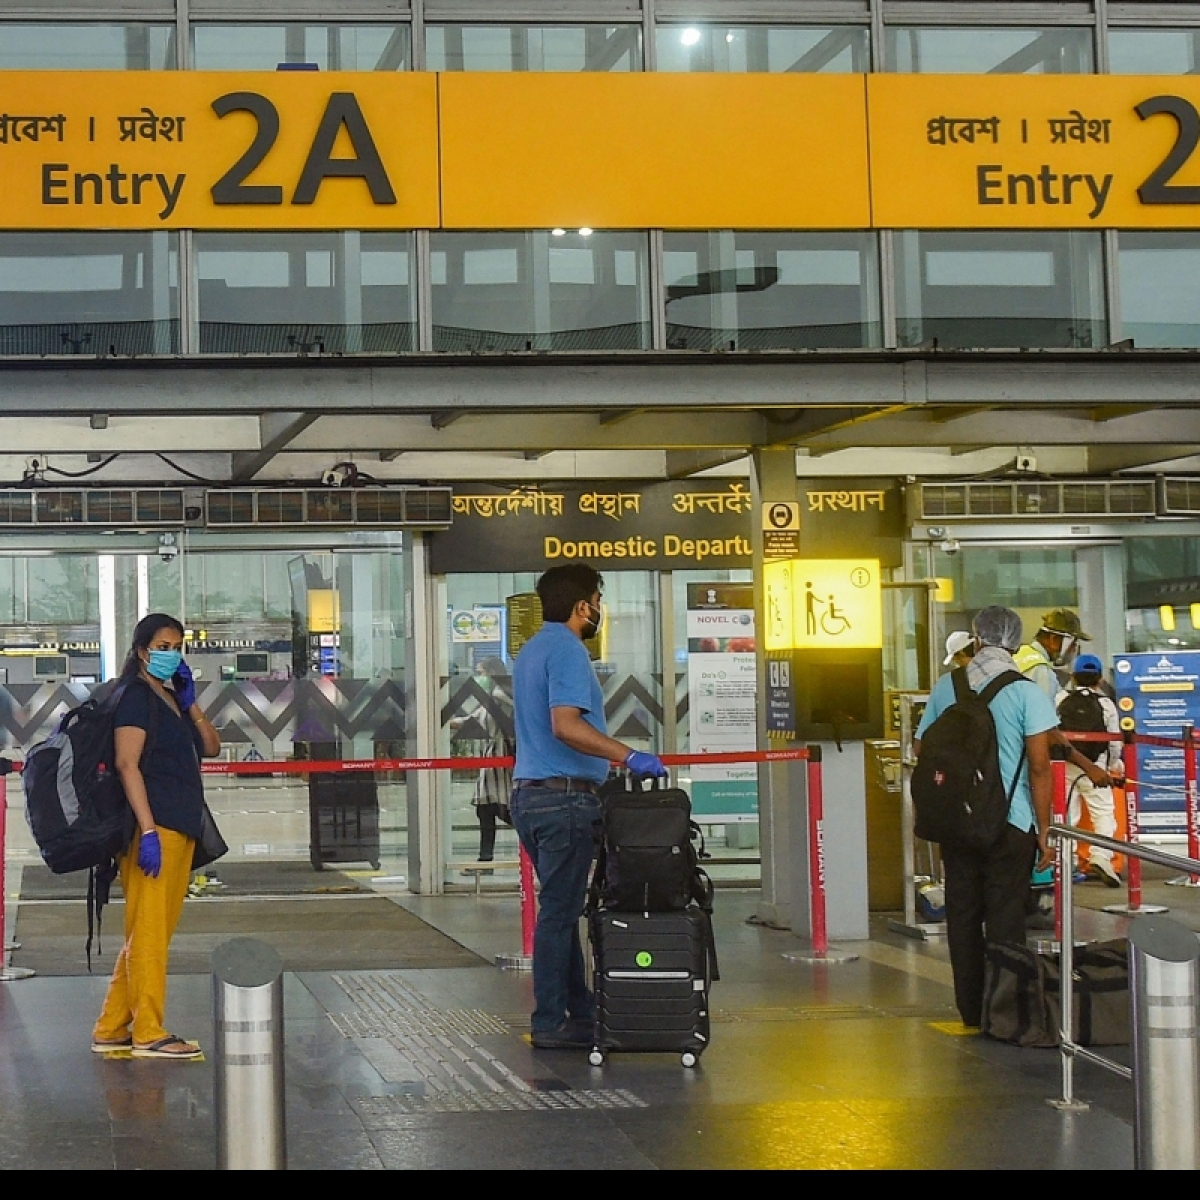 COVID-19 case surge: DGCA mulls imposition of spot fines at airports for rule violations